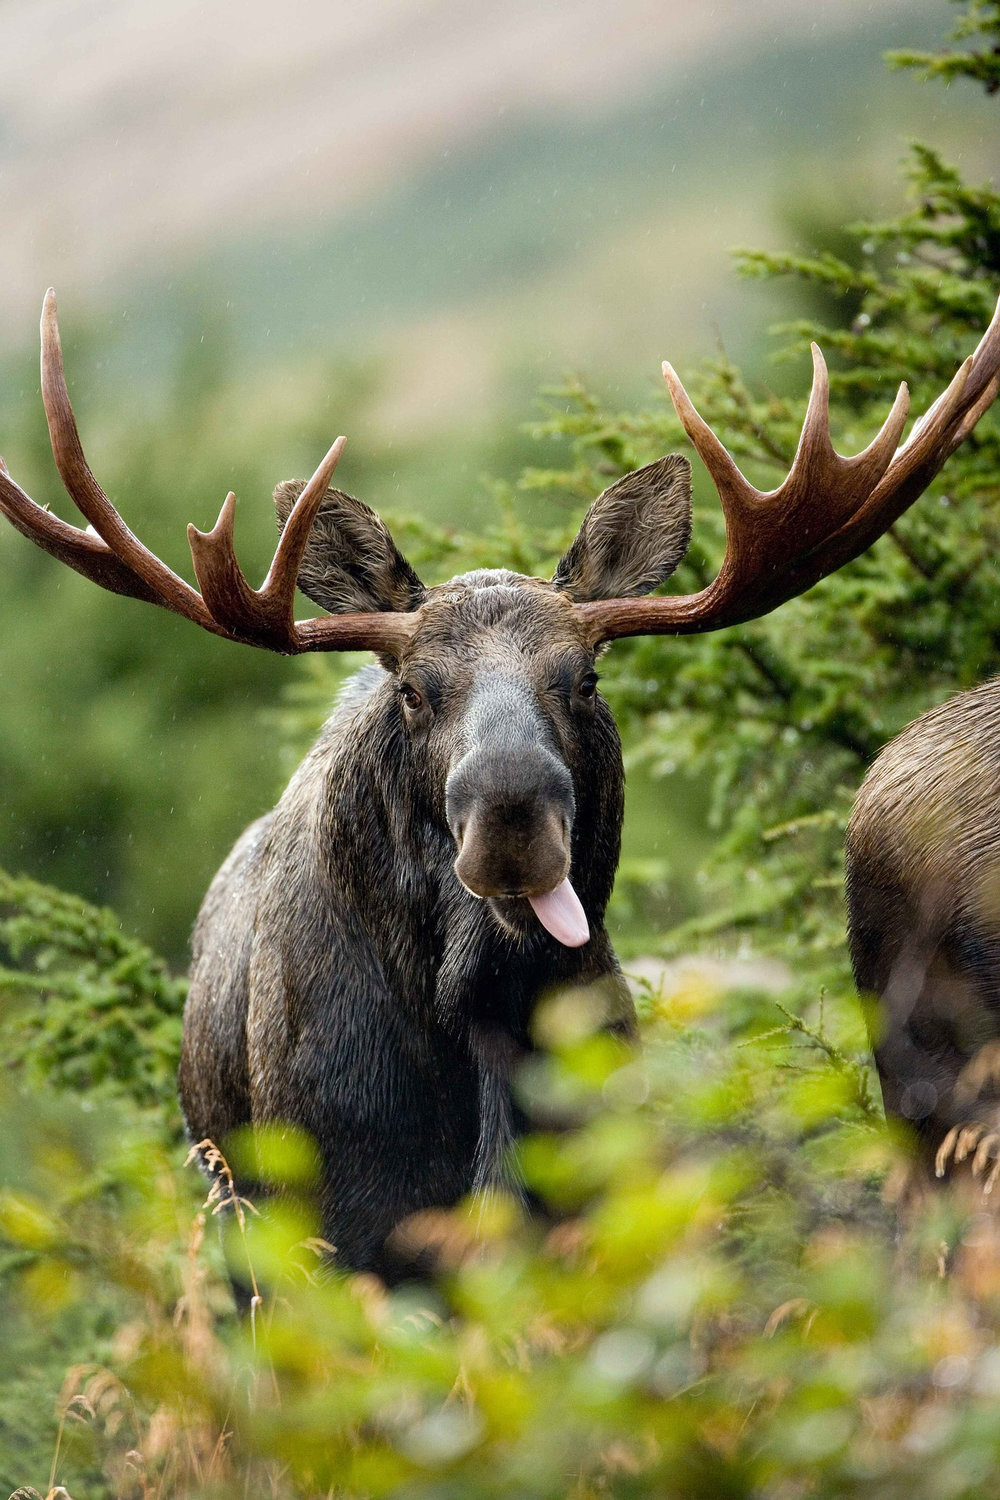 Bull moose eating in Chugach State Park